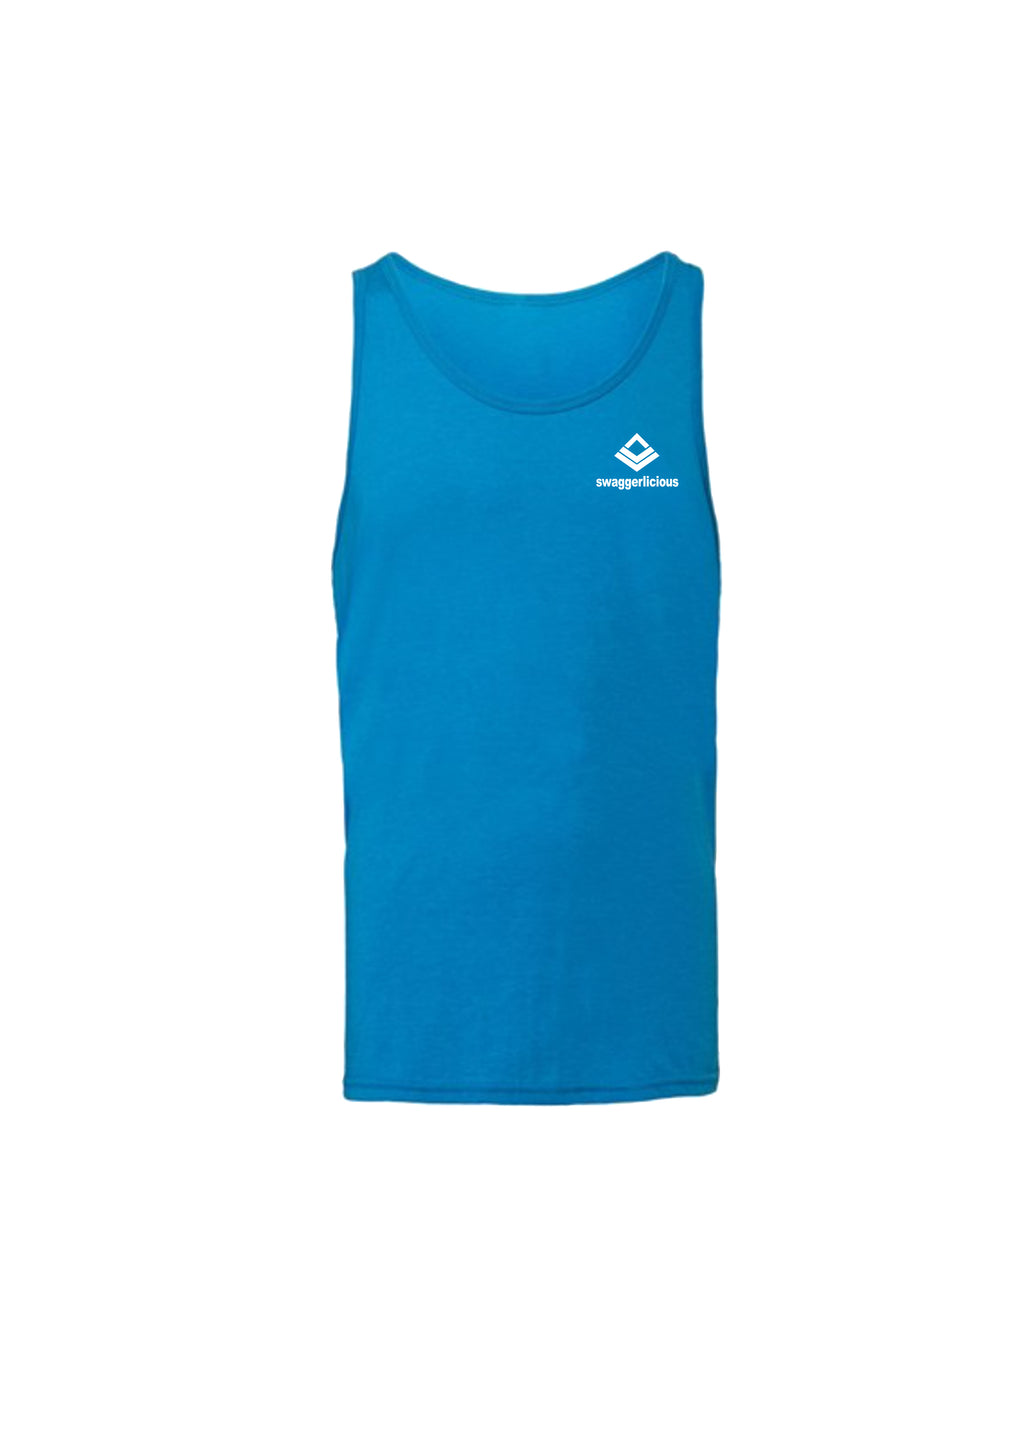 Swaggerlicious Classic Royal Tank with Mini Logo - swaggerlicious-clothing.com